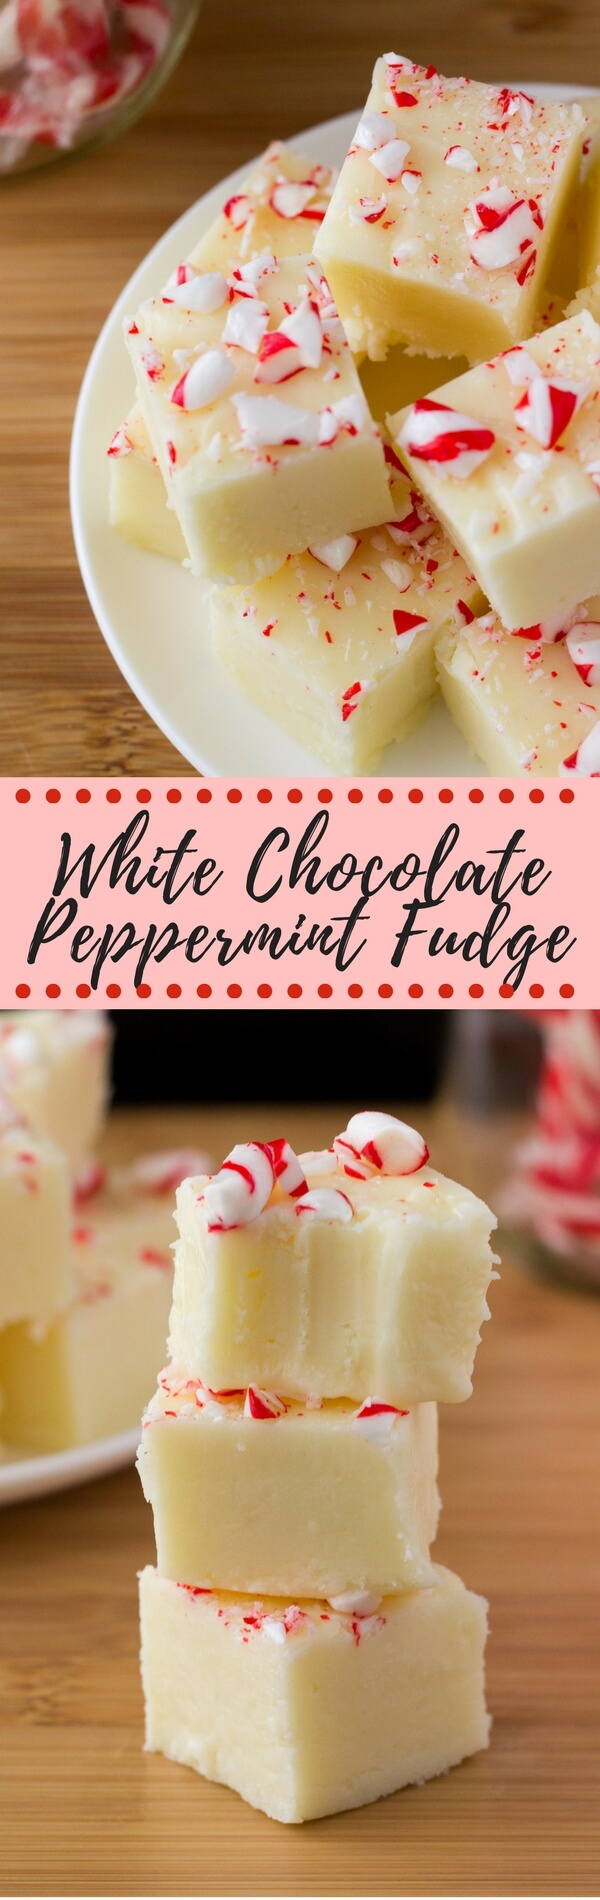 White Chocolate Peppermint Fudge. An easy white chocolate fudge recipe that's infused with peppermint & sprinkled with candy canes.